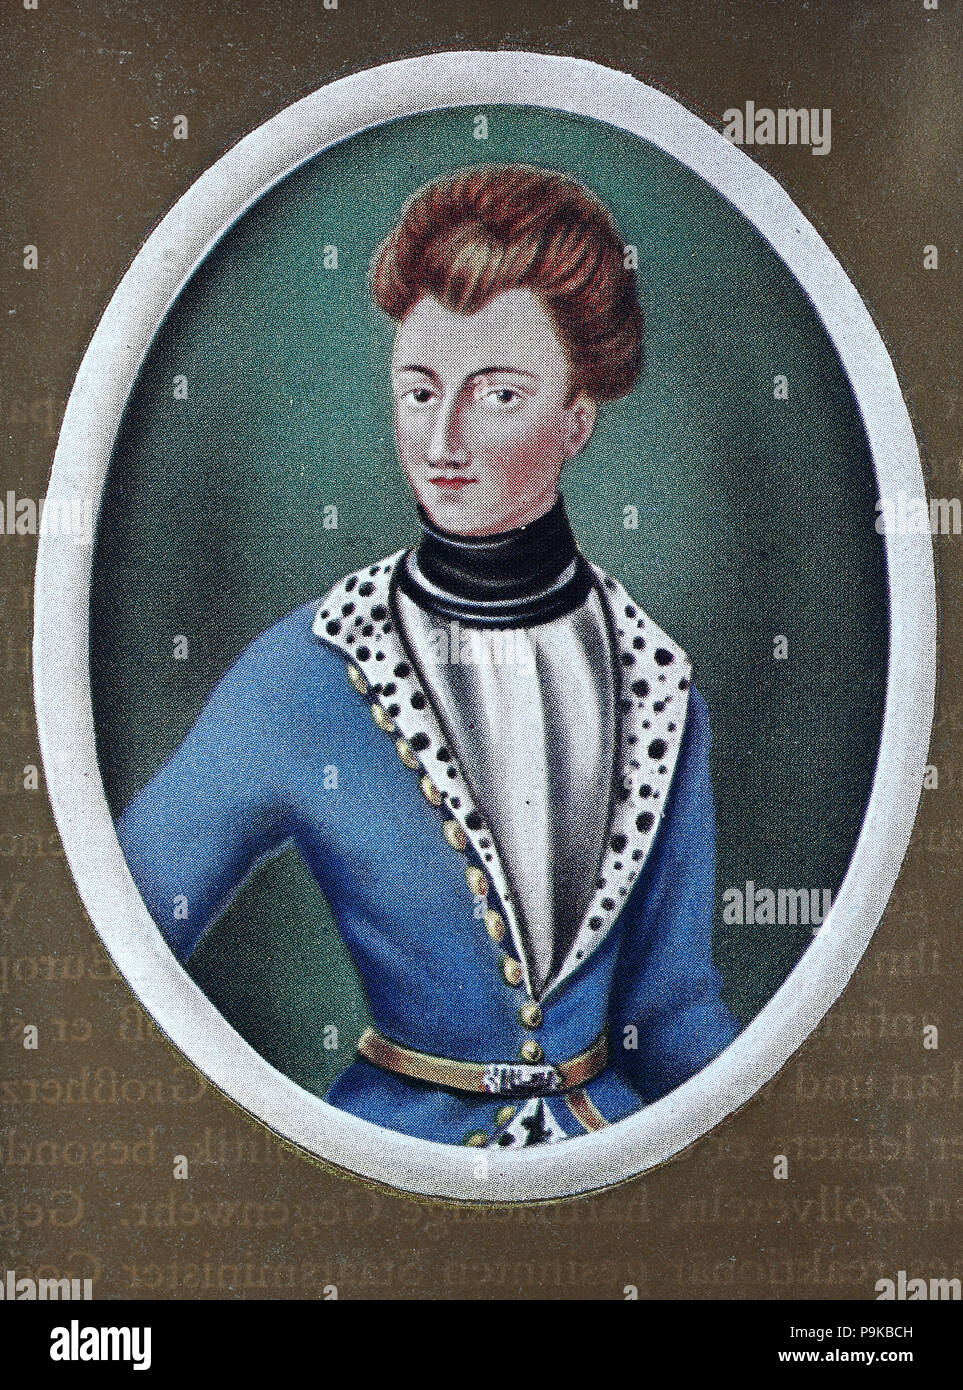 Charles XII, also Carl, Karl XII, 17 June 1682 – 30 November 1718 O.S., Latinized to Carolus Rex, was the King of Sweden from 1697 to 1718. He belonged to the House of Palatinate-Zweibrücken, a branch line of the House of Wittelsbach, digital improved reproduction of an original print from the year 1900 - Stock Image